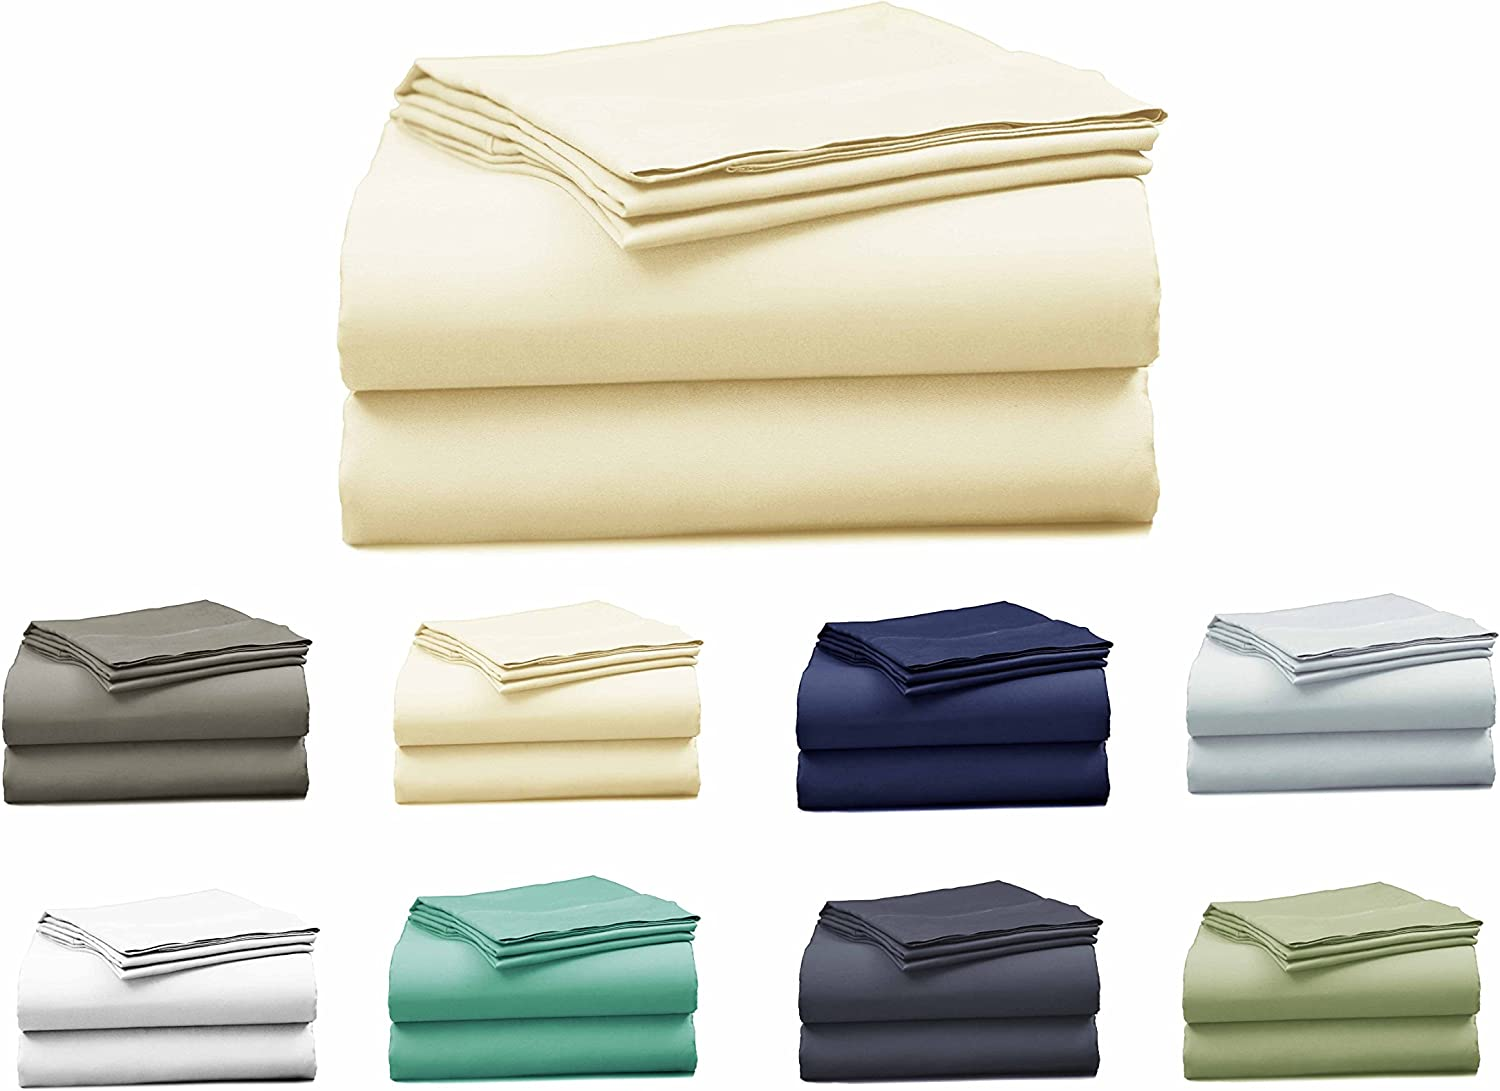 Elles Bedding Collections Bed Sheets 100% Cotton Sheet Set, 400 Thread Count, Sateen Weave, 15 inch Deep Pocket, 4-Piece Bedsheet set IVORY, Queen